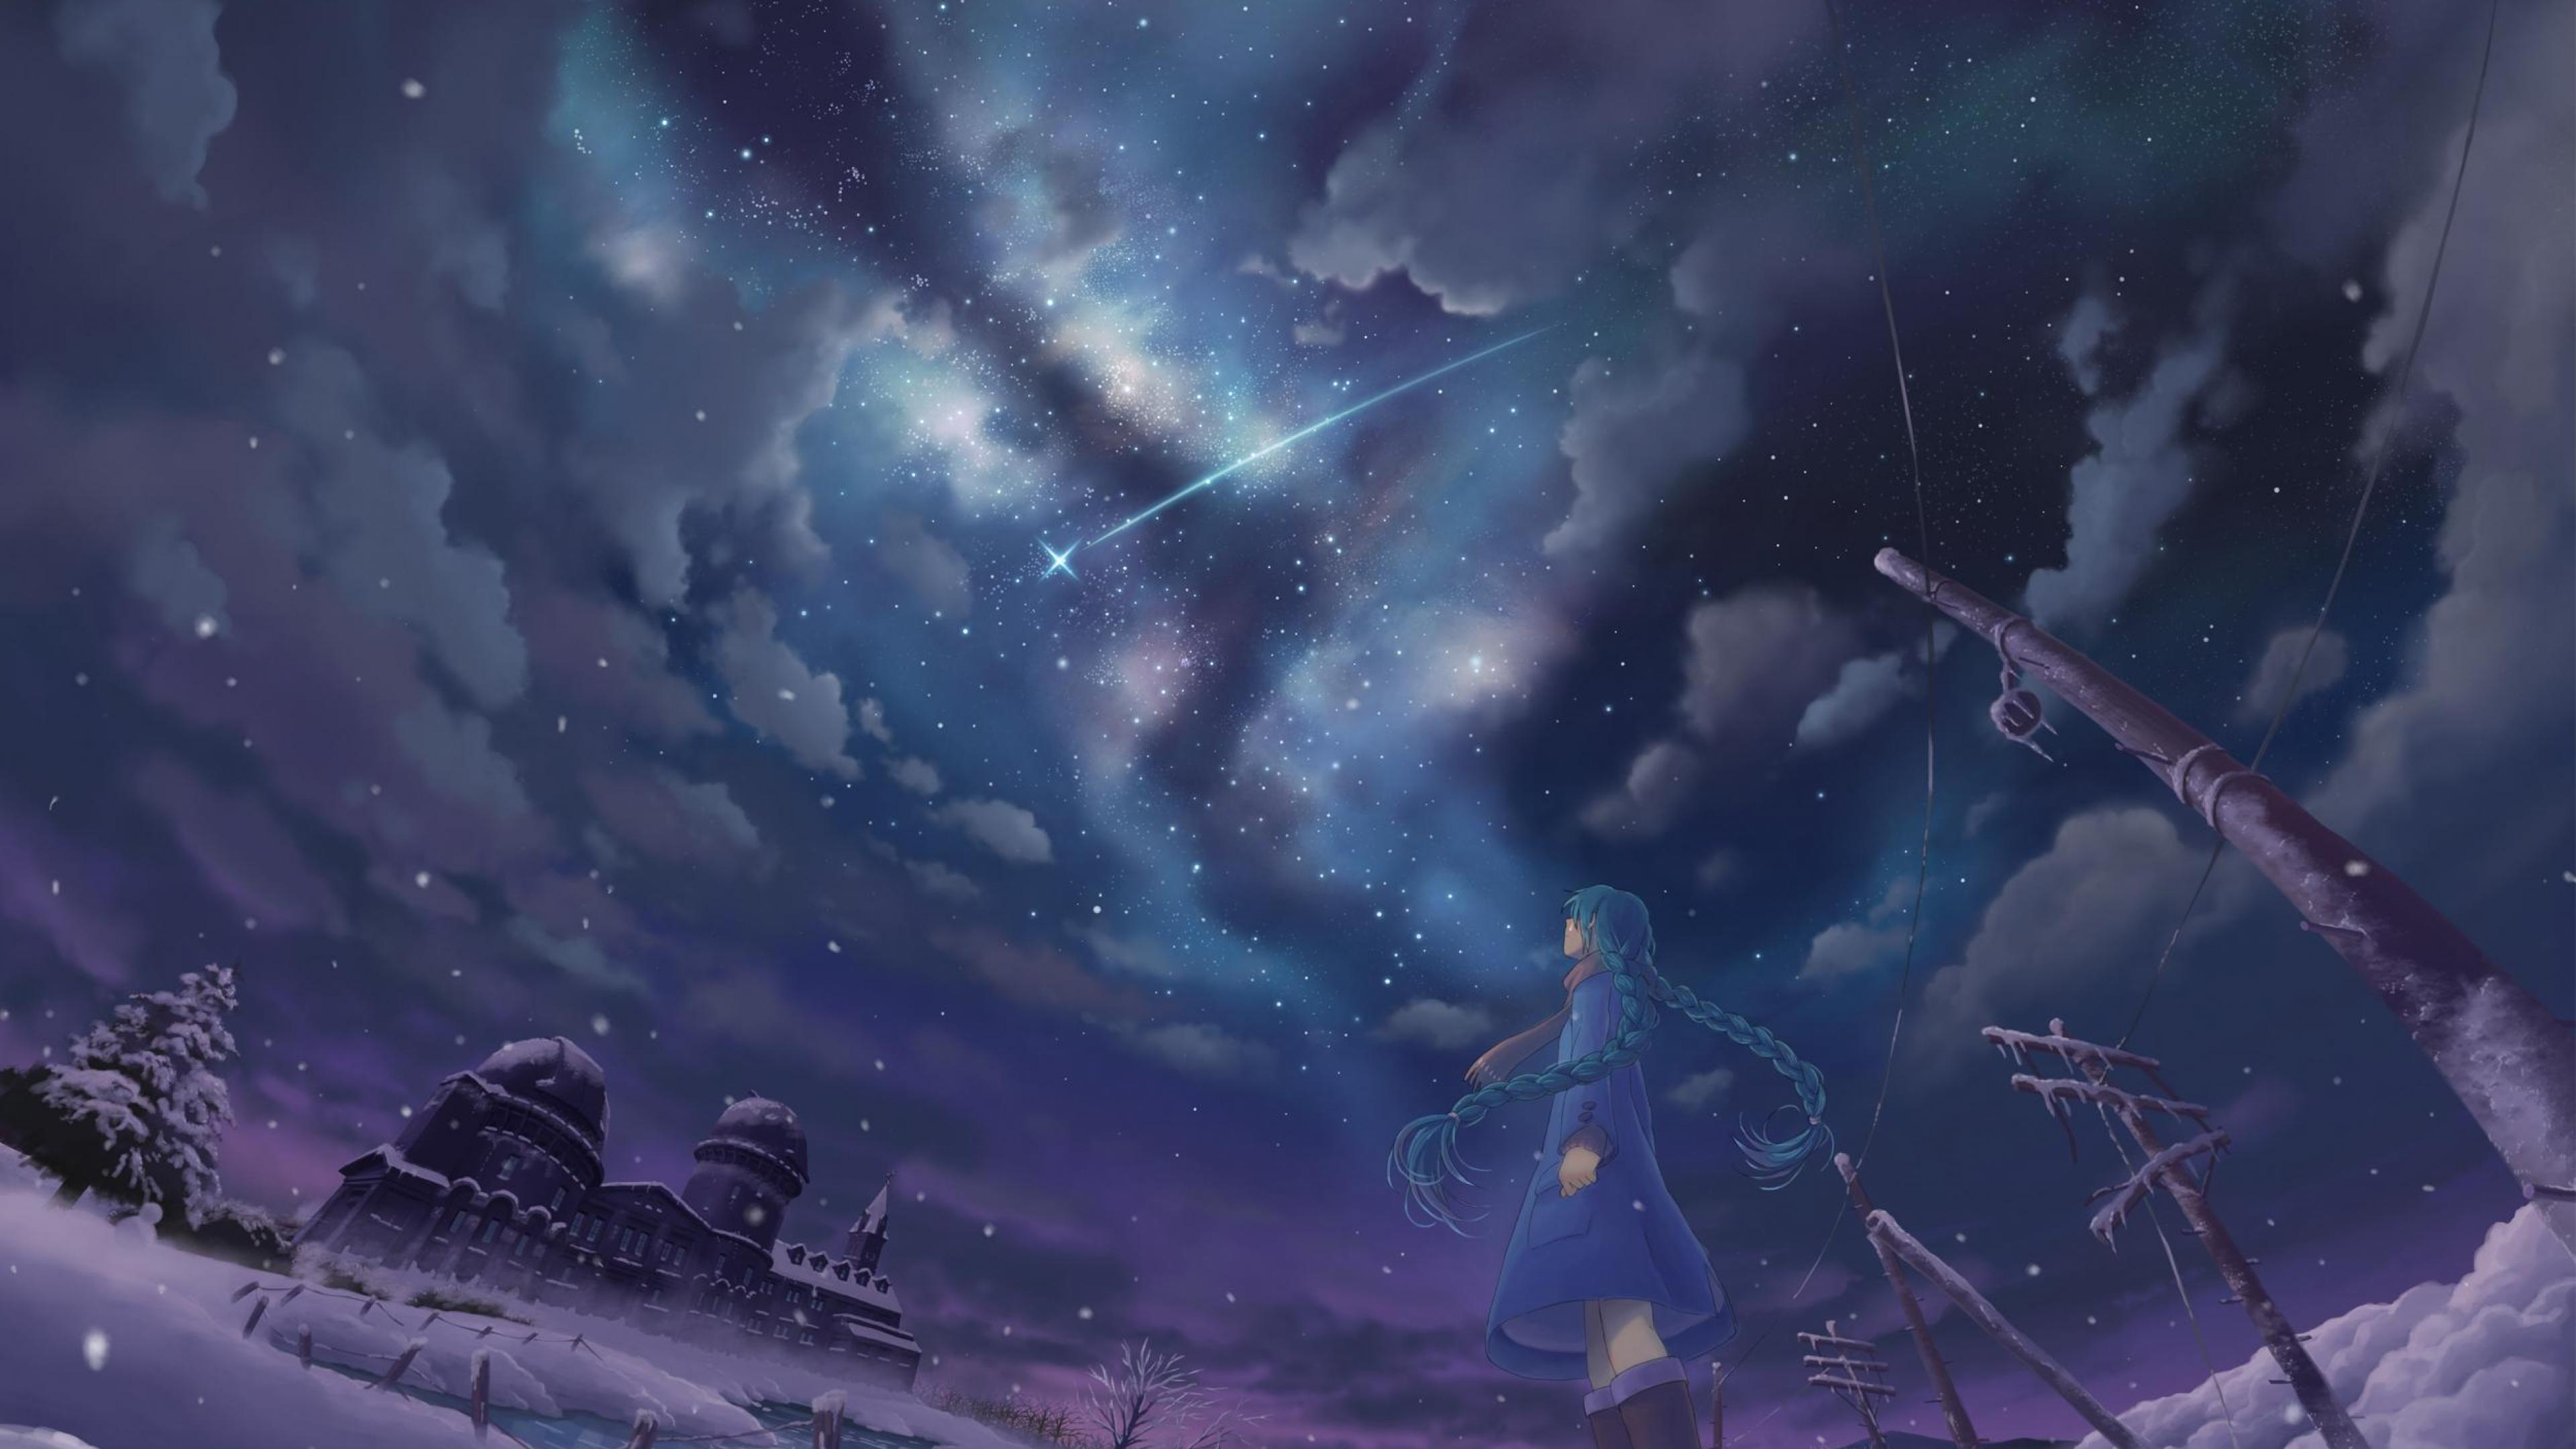 Shooting stars Night Snow Stars Winter Anime girls HD 3840x2160